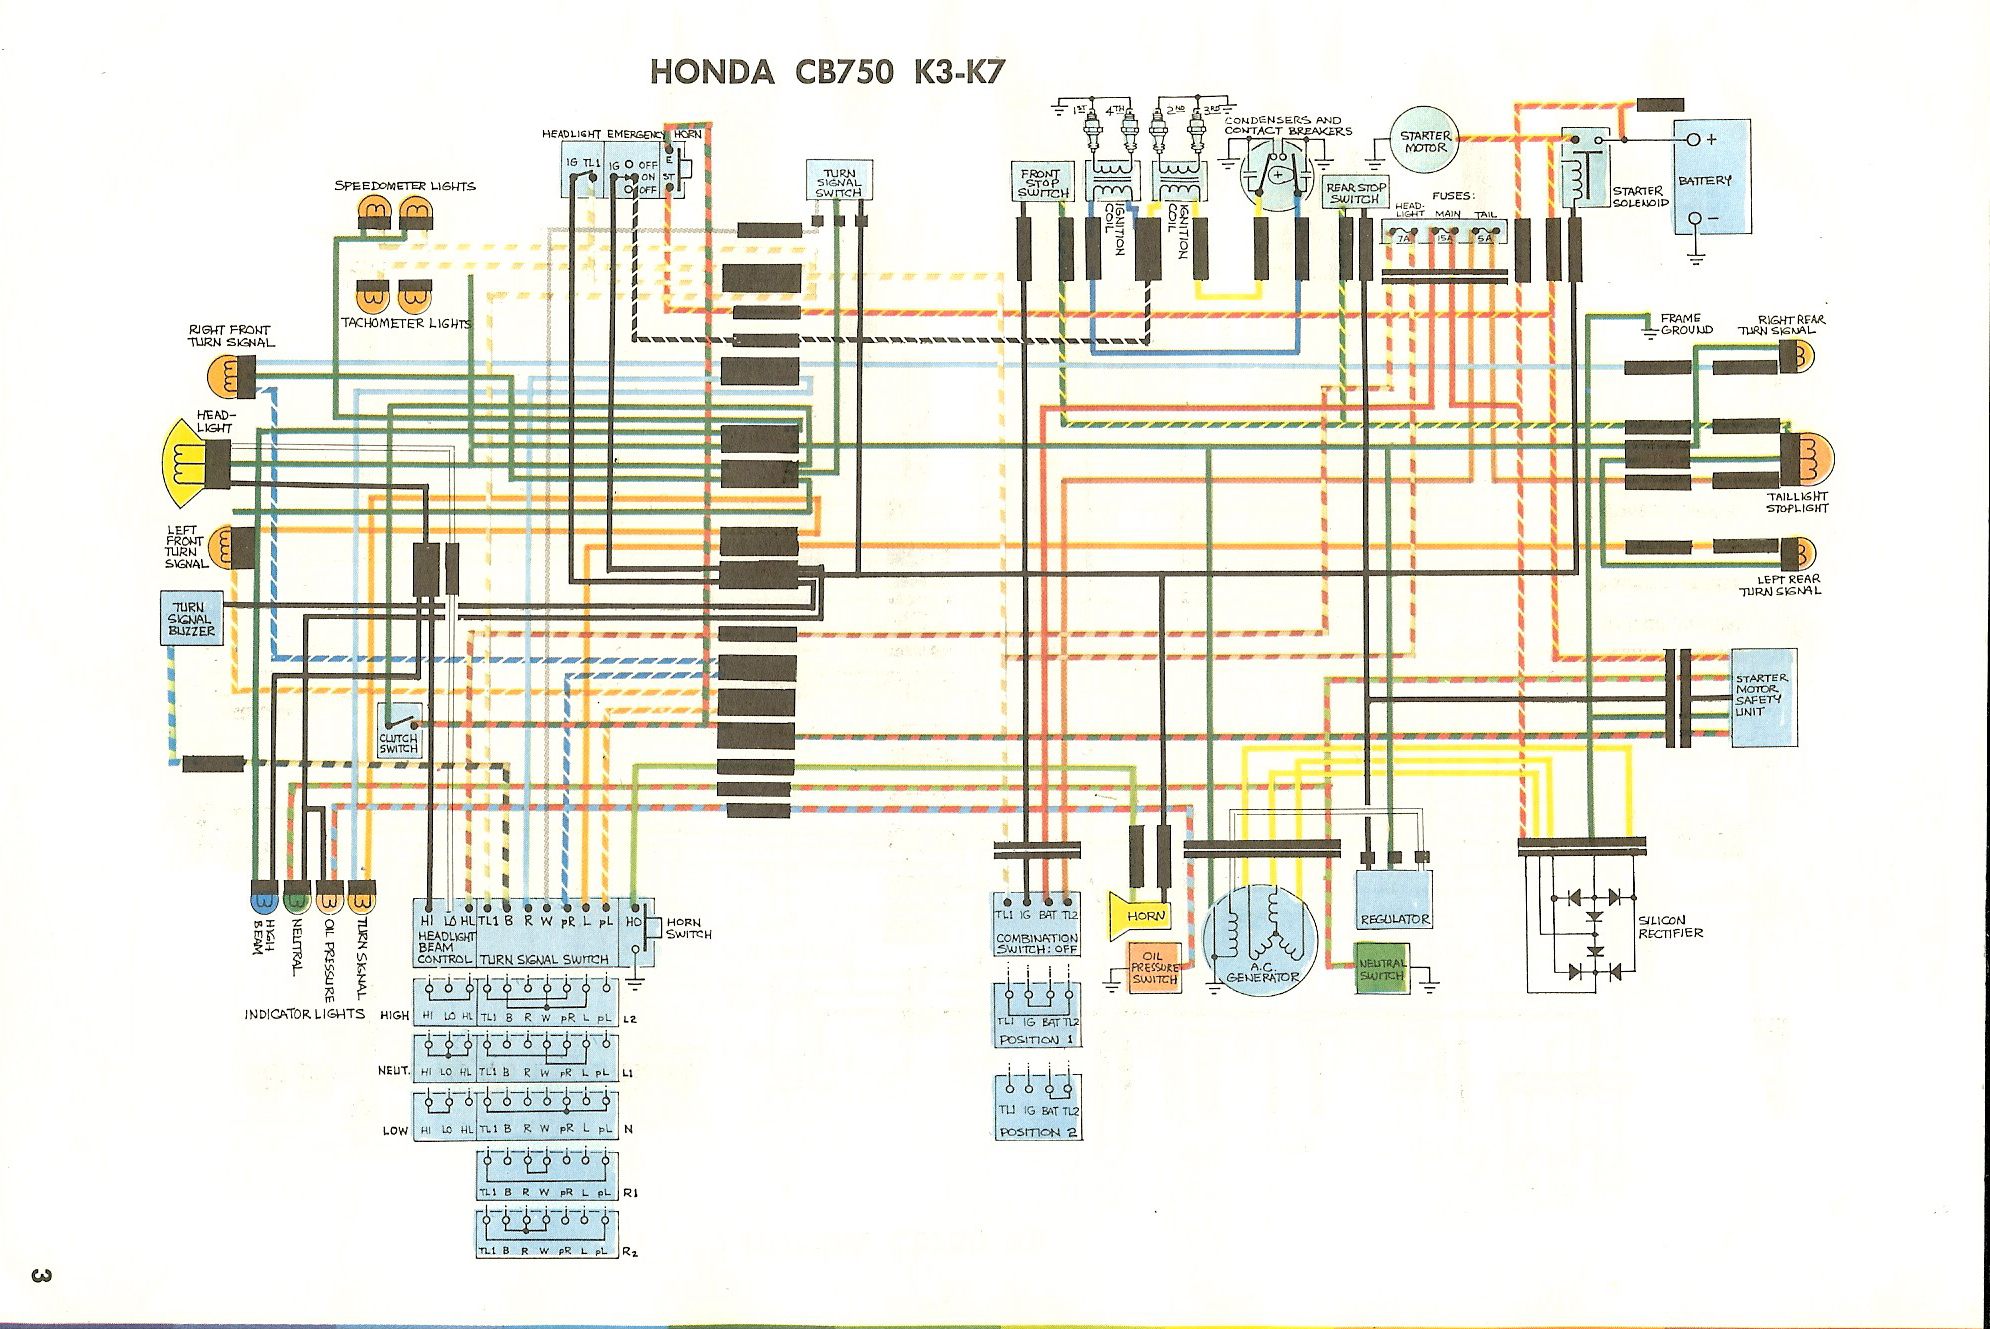 1977 Honda Cb750 Wiring Diagram Wiring Diagram Database